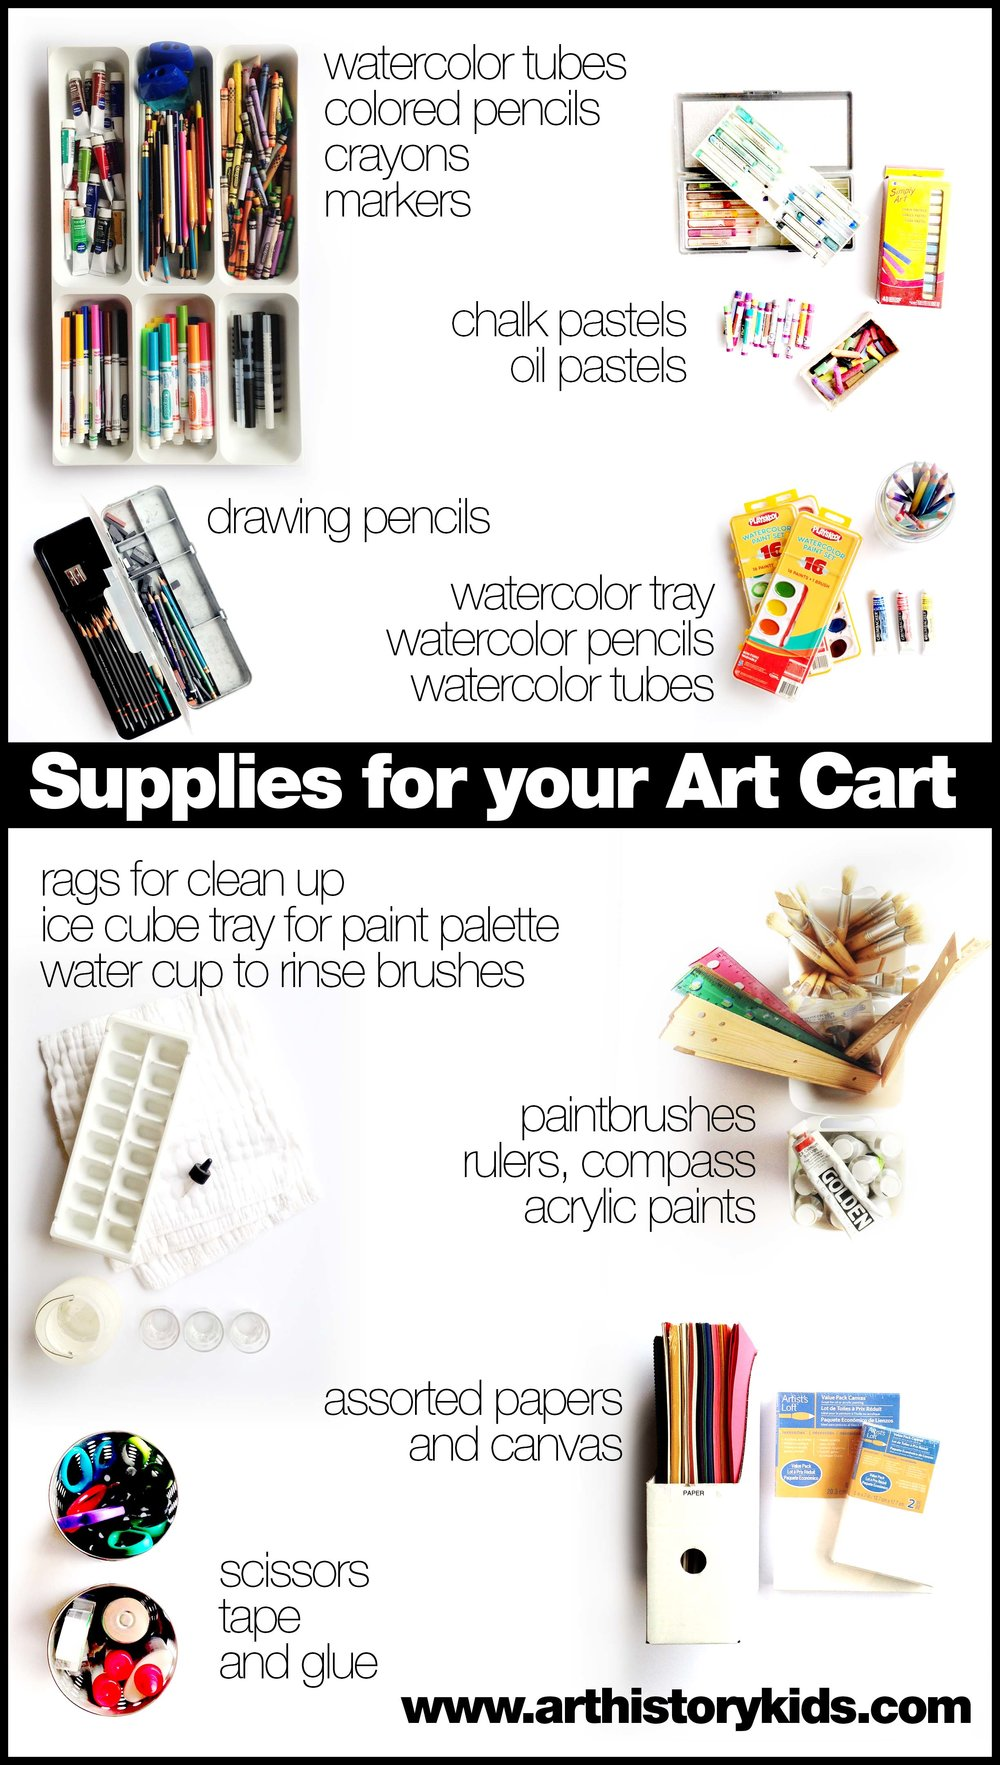 Learn quick and easy tips for setting up an art cart for your kids! Includes a step by step tutorial and a supply checklist.